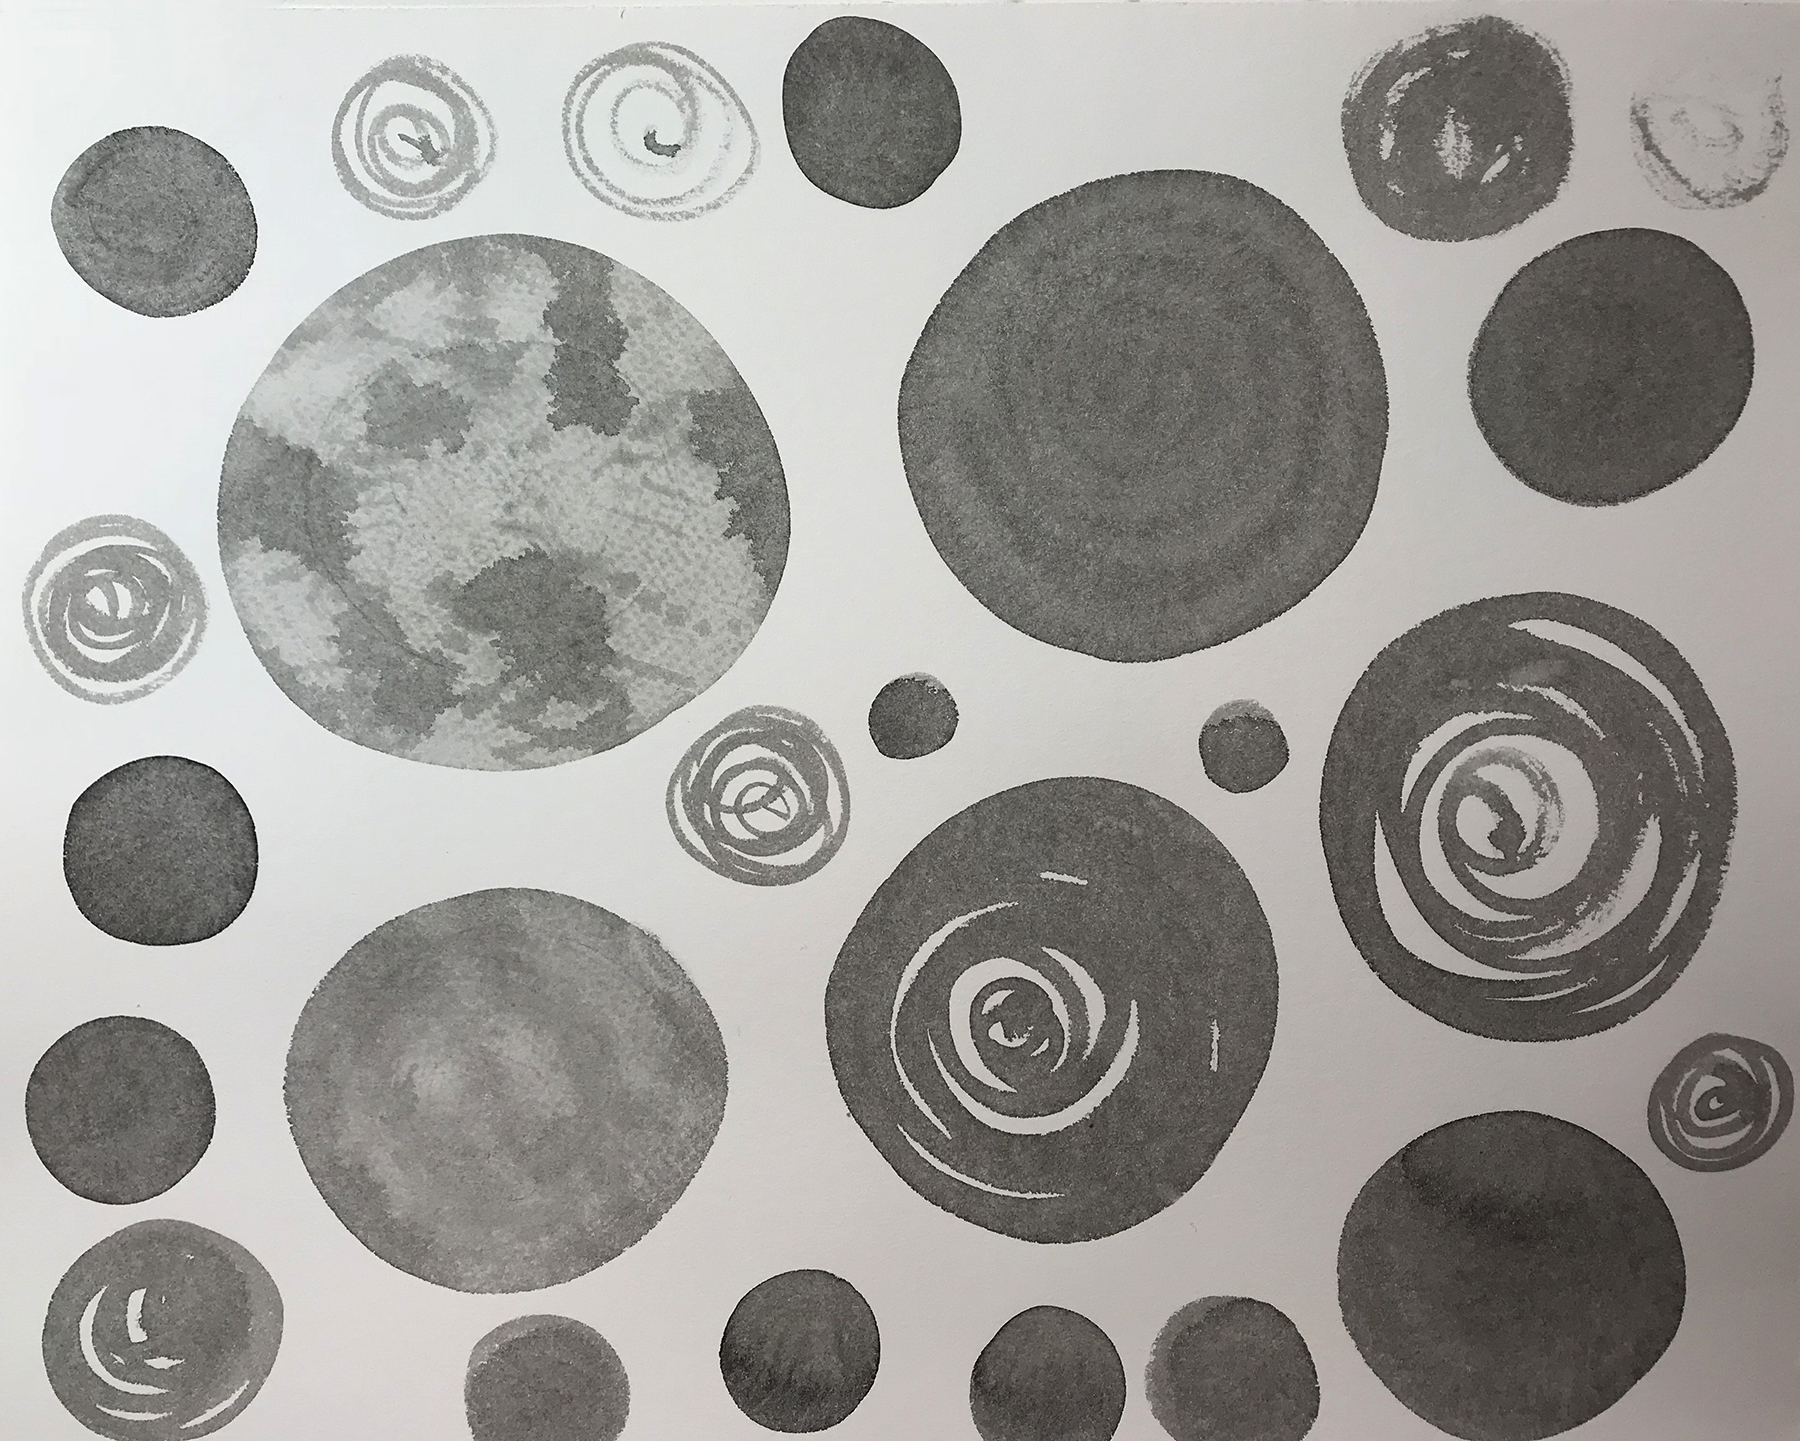 In the beginning, there are many circles...